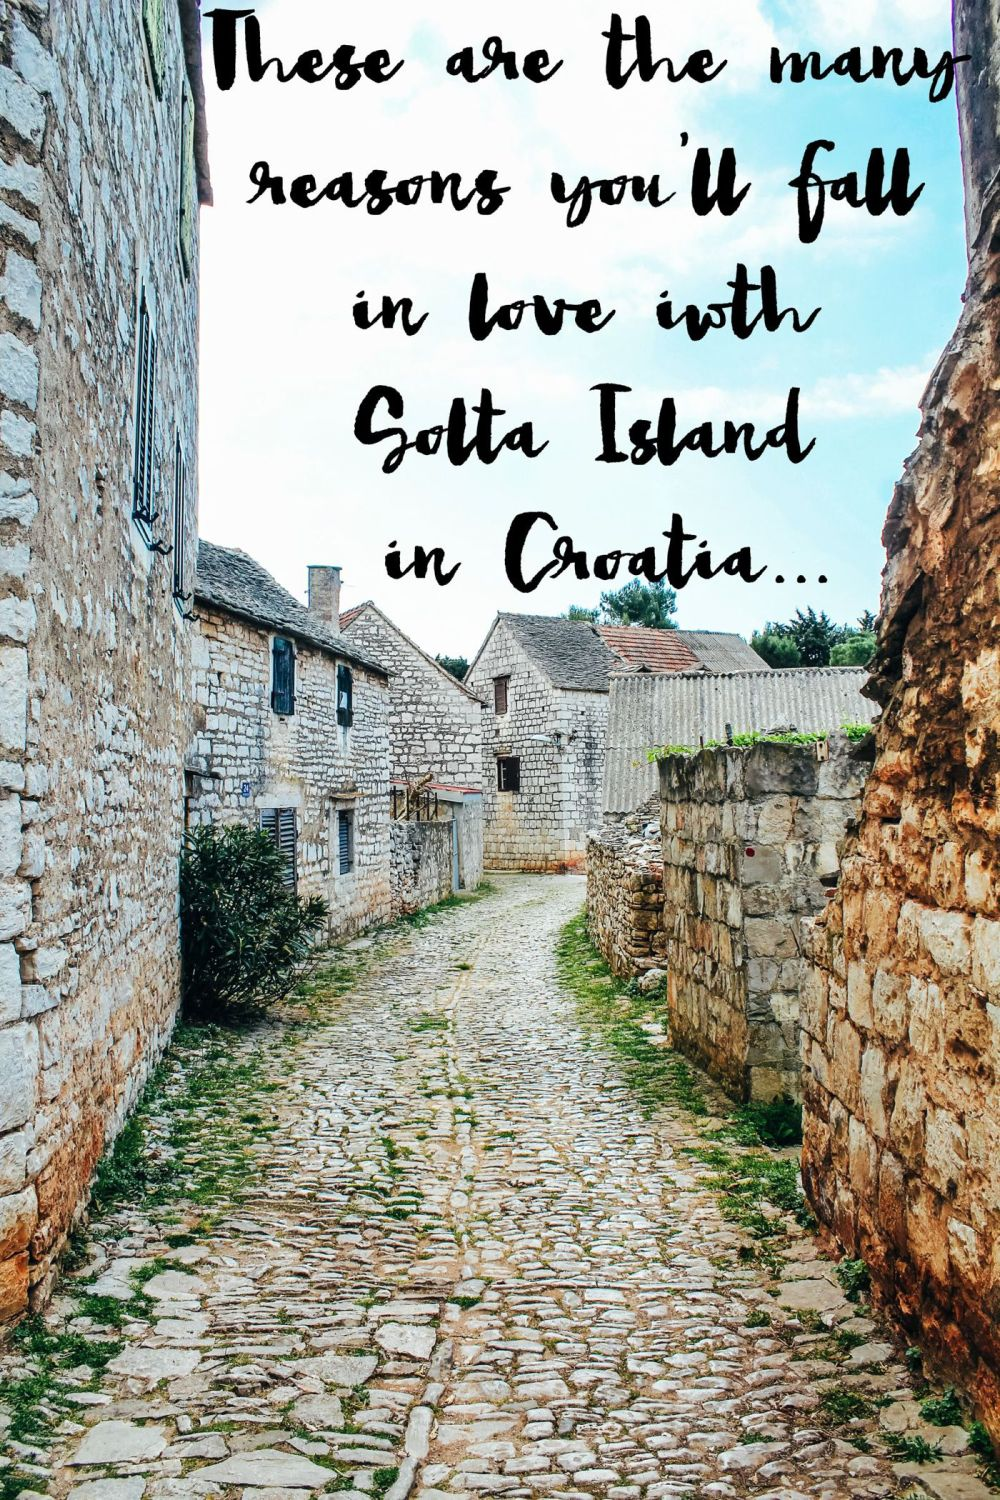 These Are The Many Reasons You'll Fall In Love With Solta Island In Croatia!